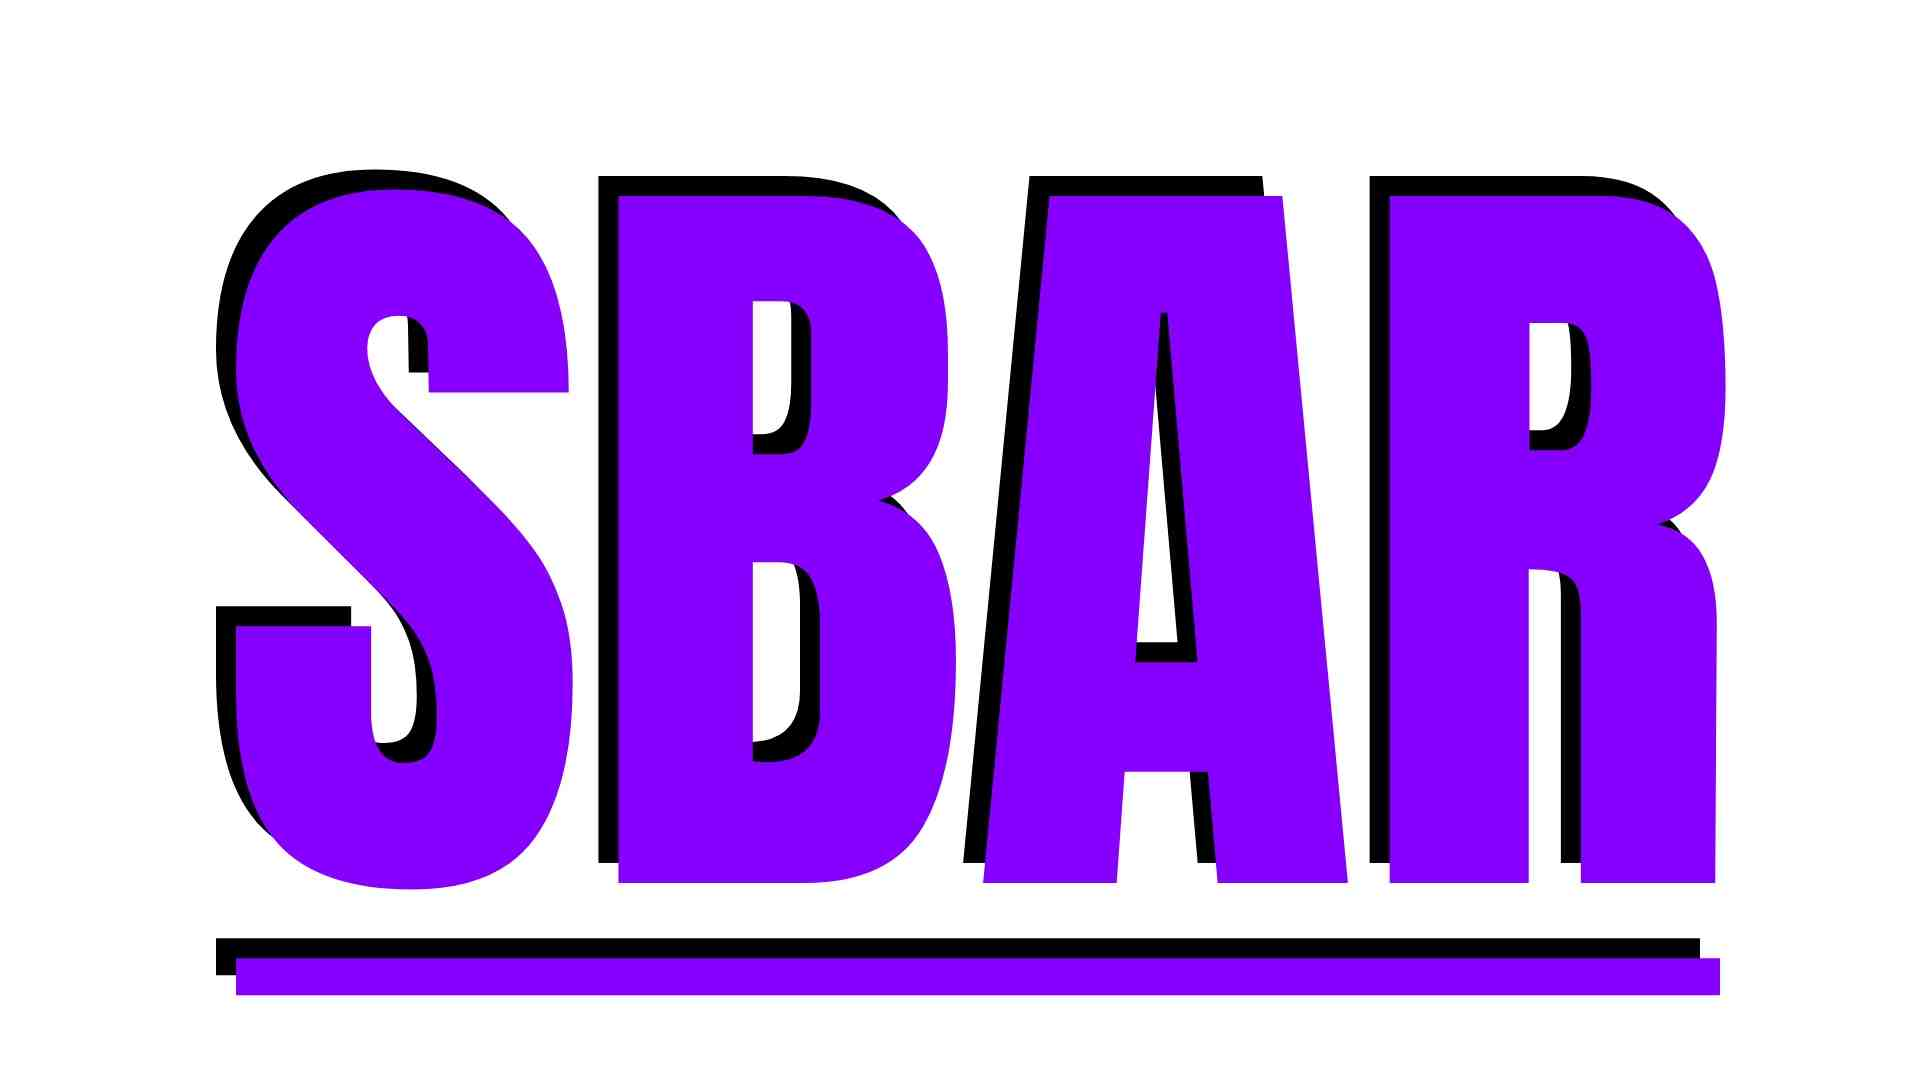 SBAR explained in detail